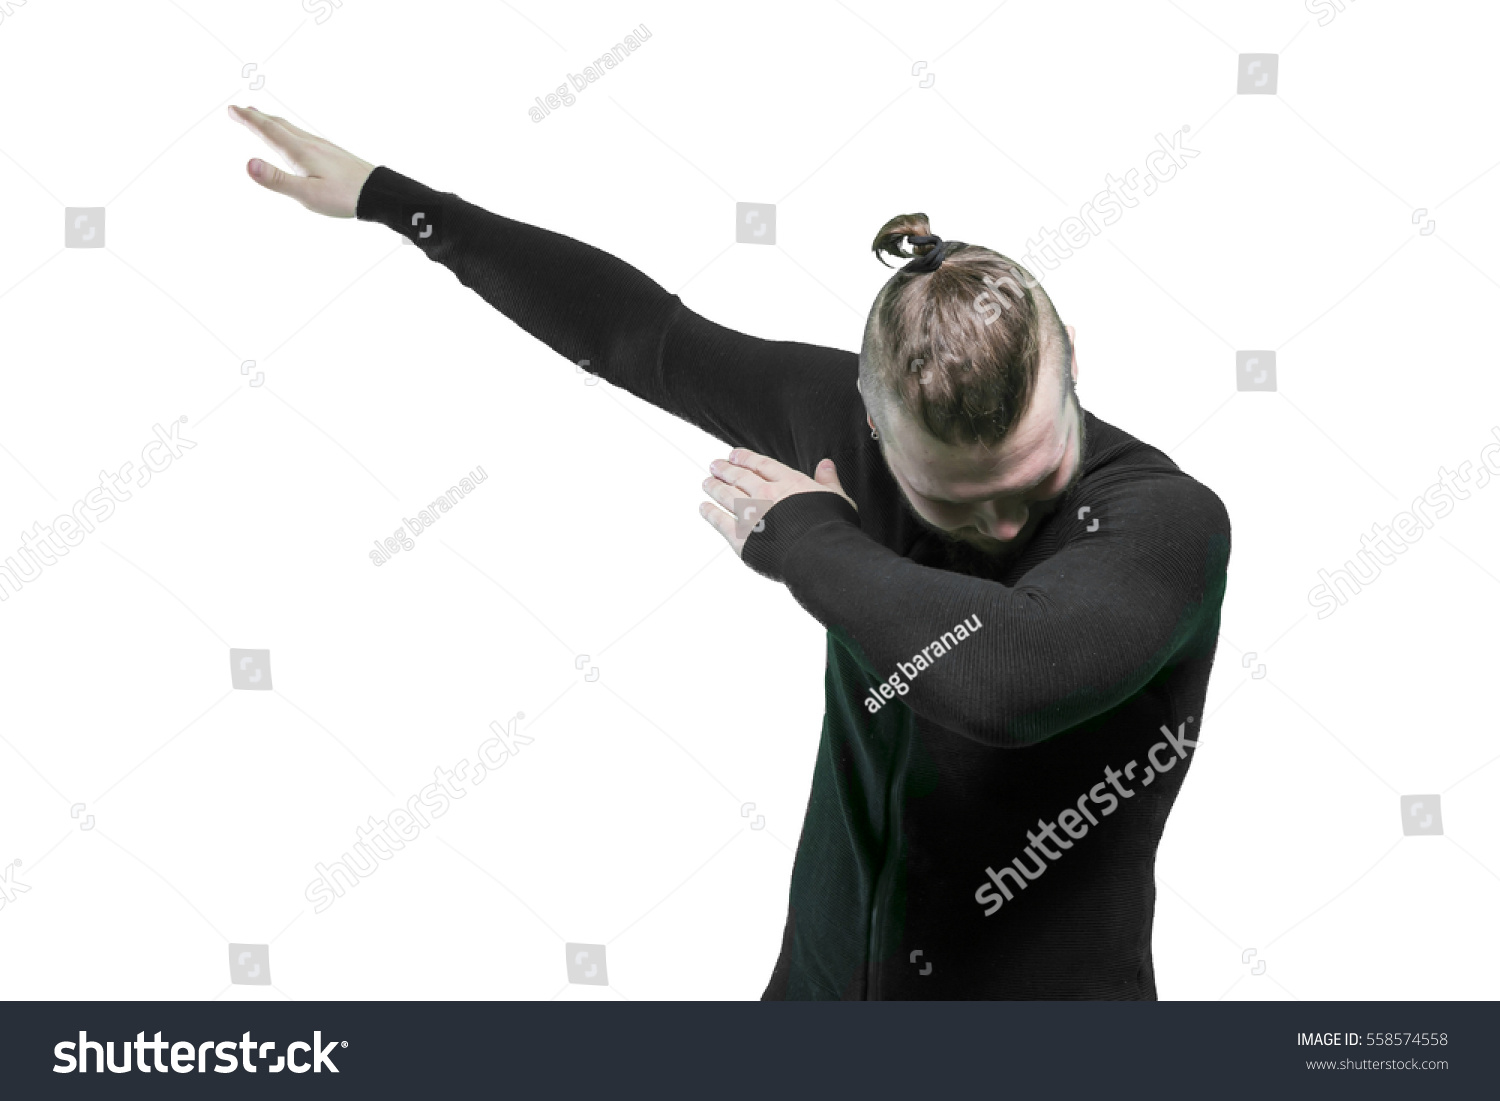 dabb dance. guy making dab dance dabb